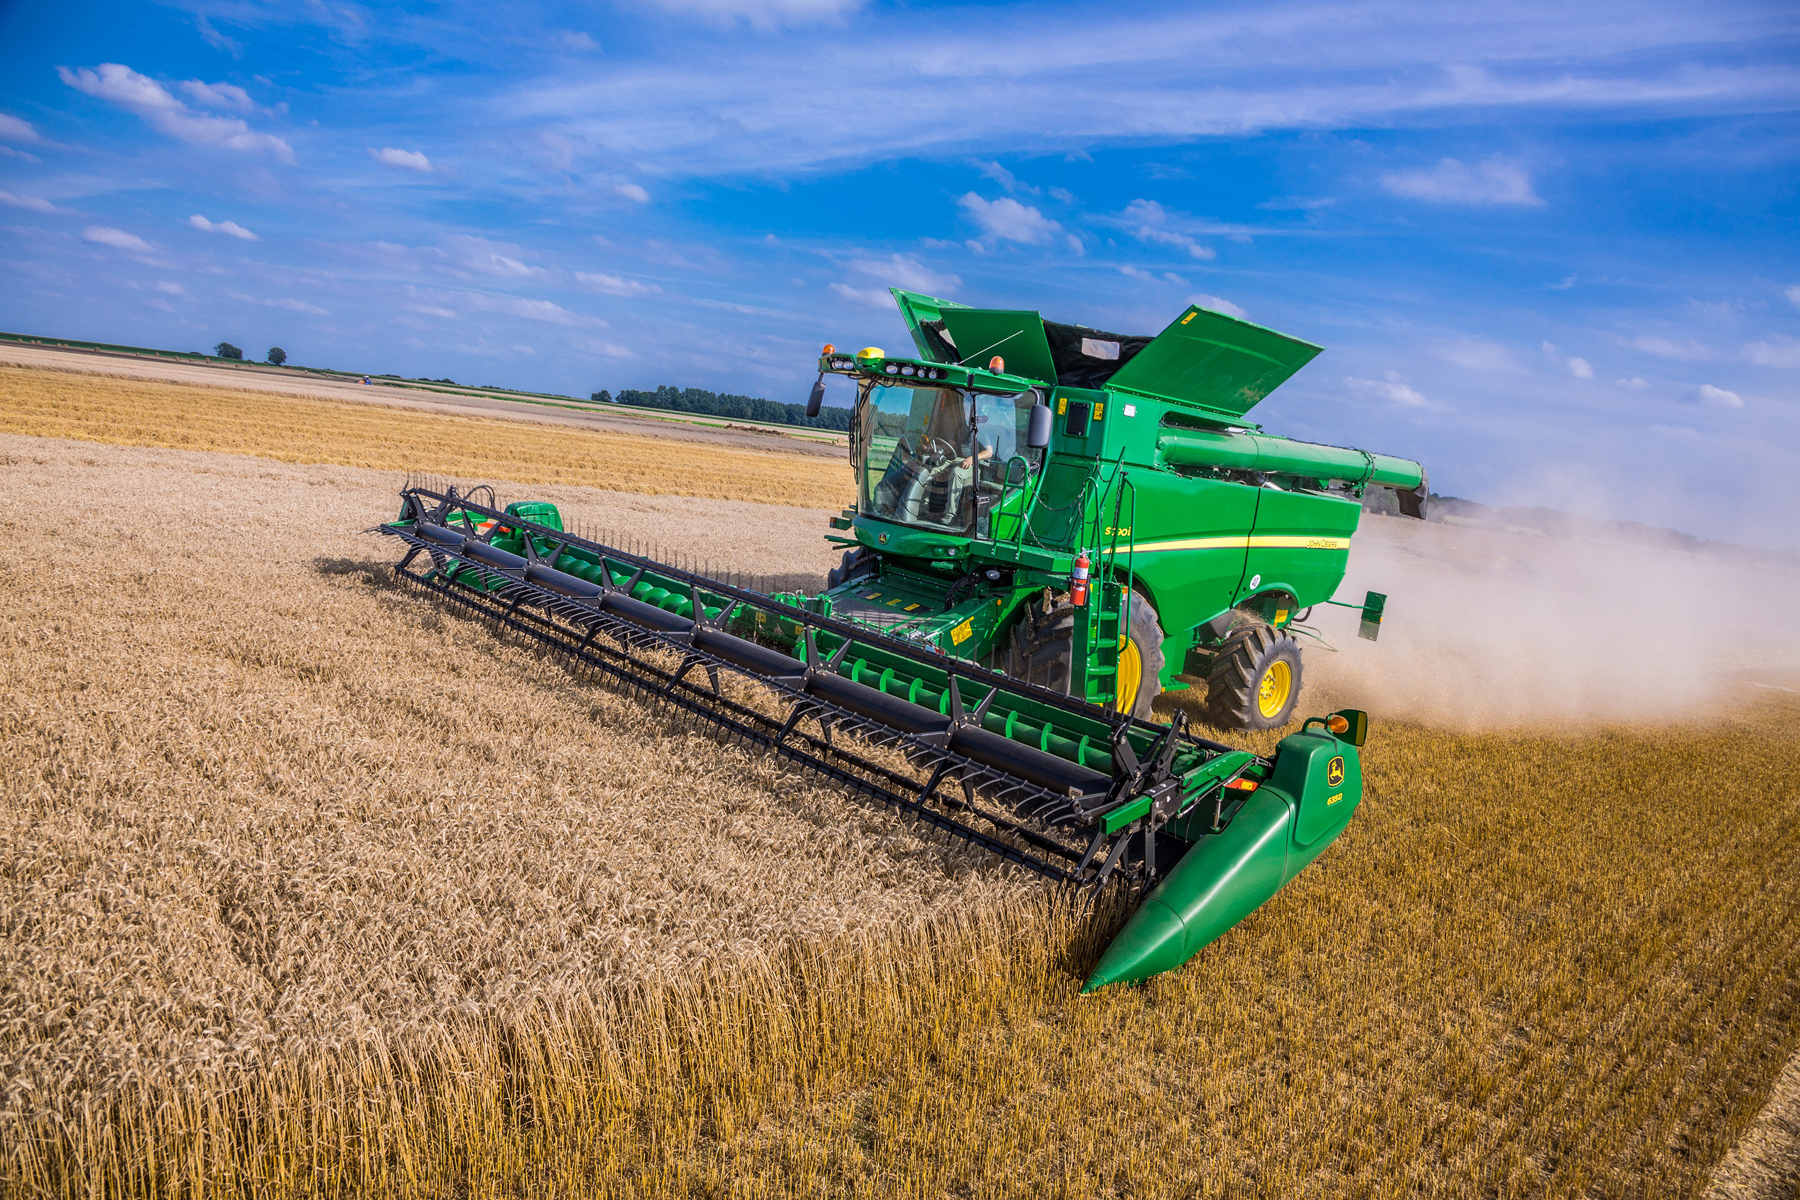 John Deere Wins At Techagro For Combine And Planter Technology